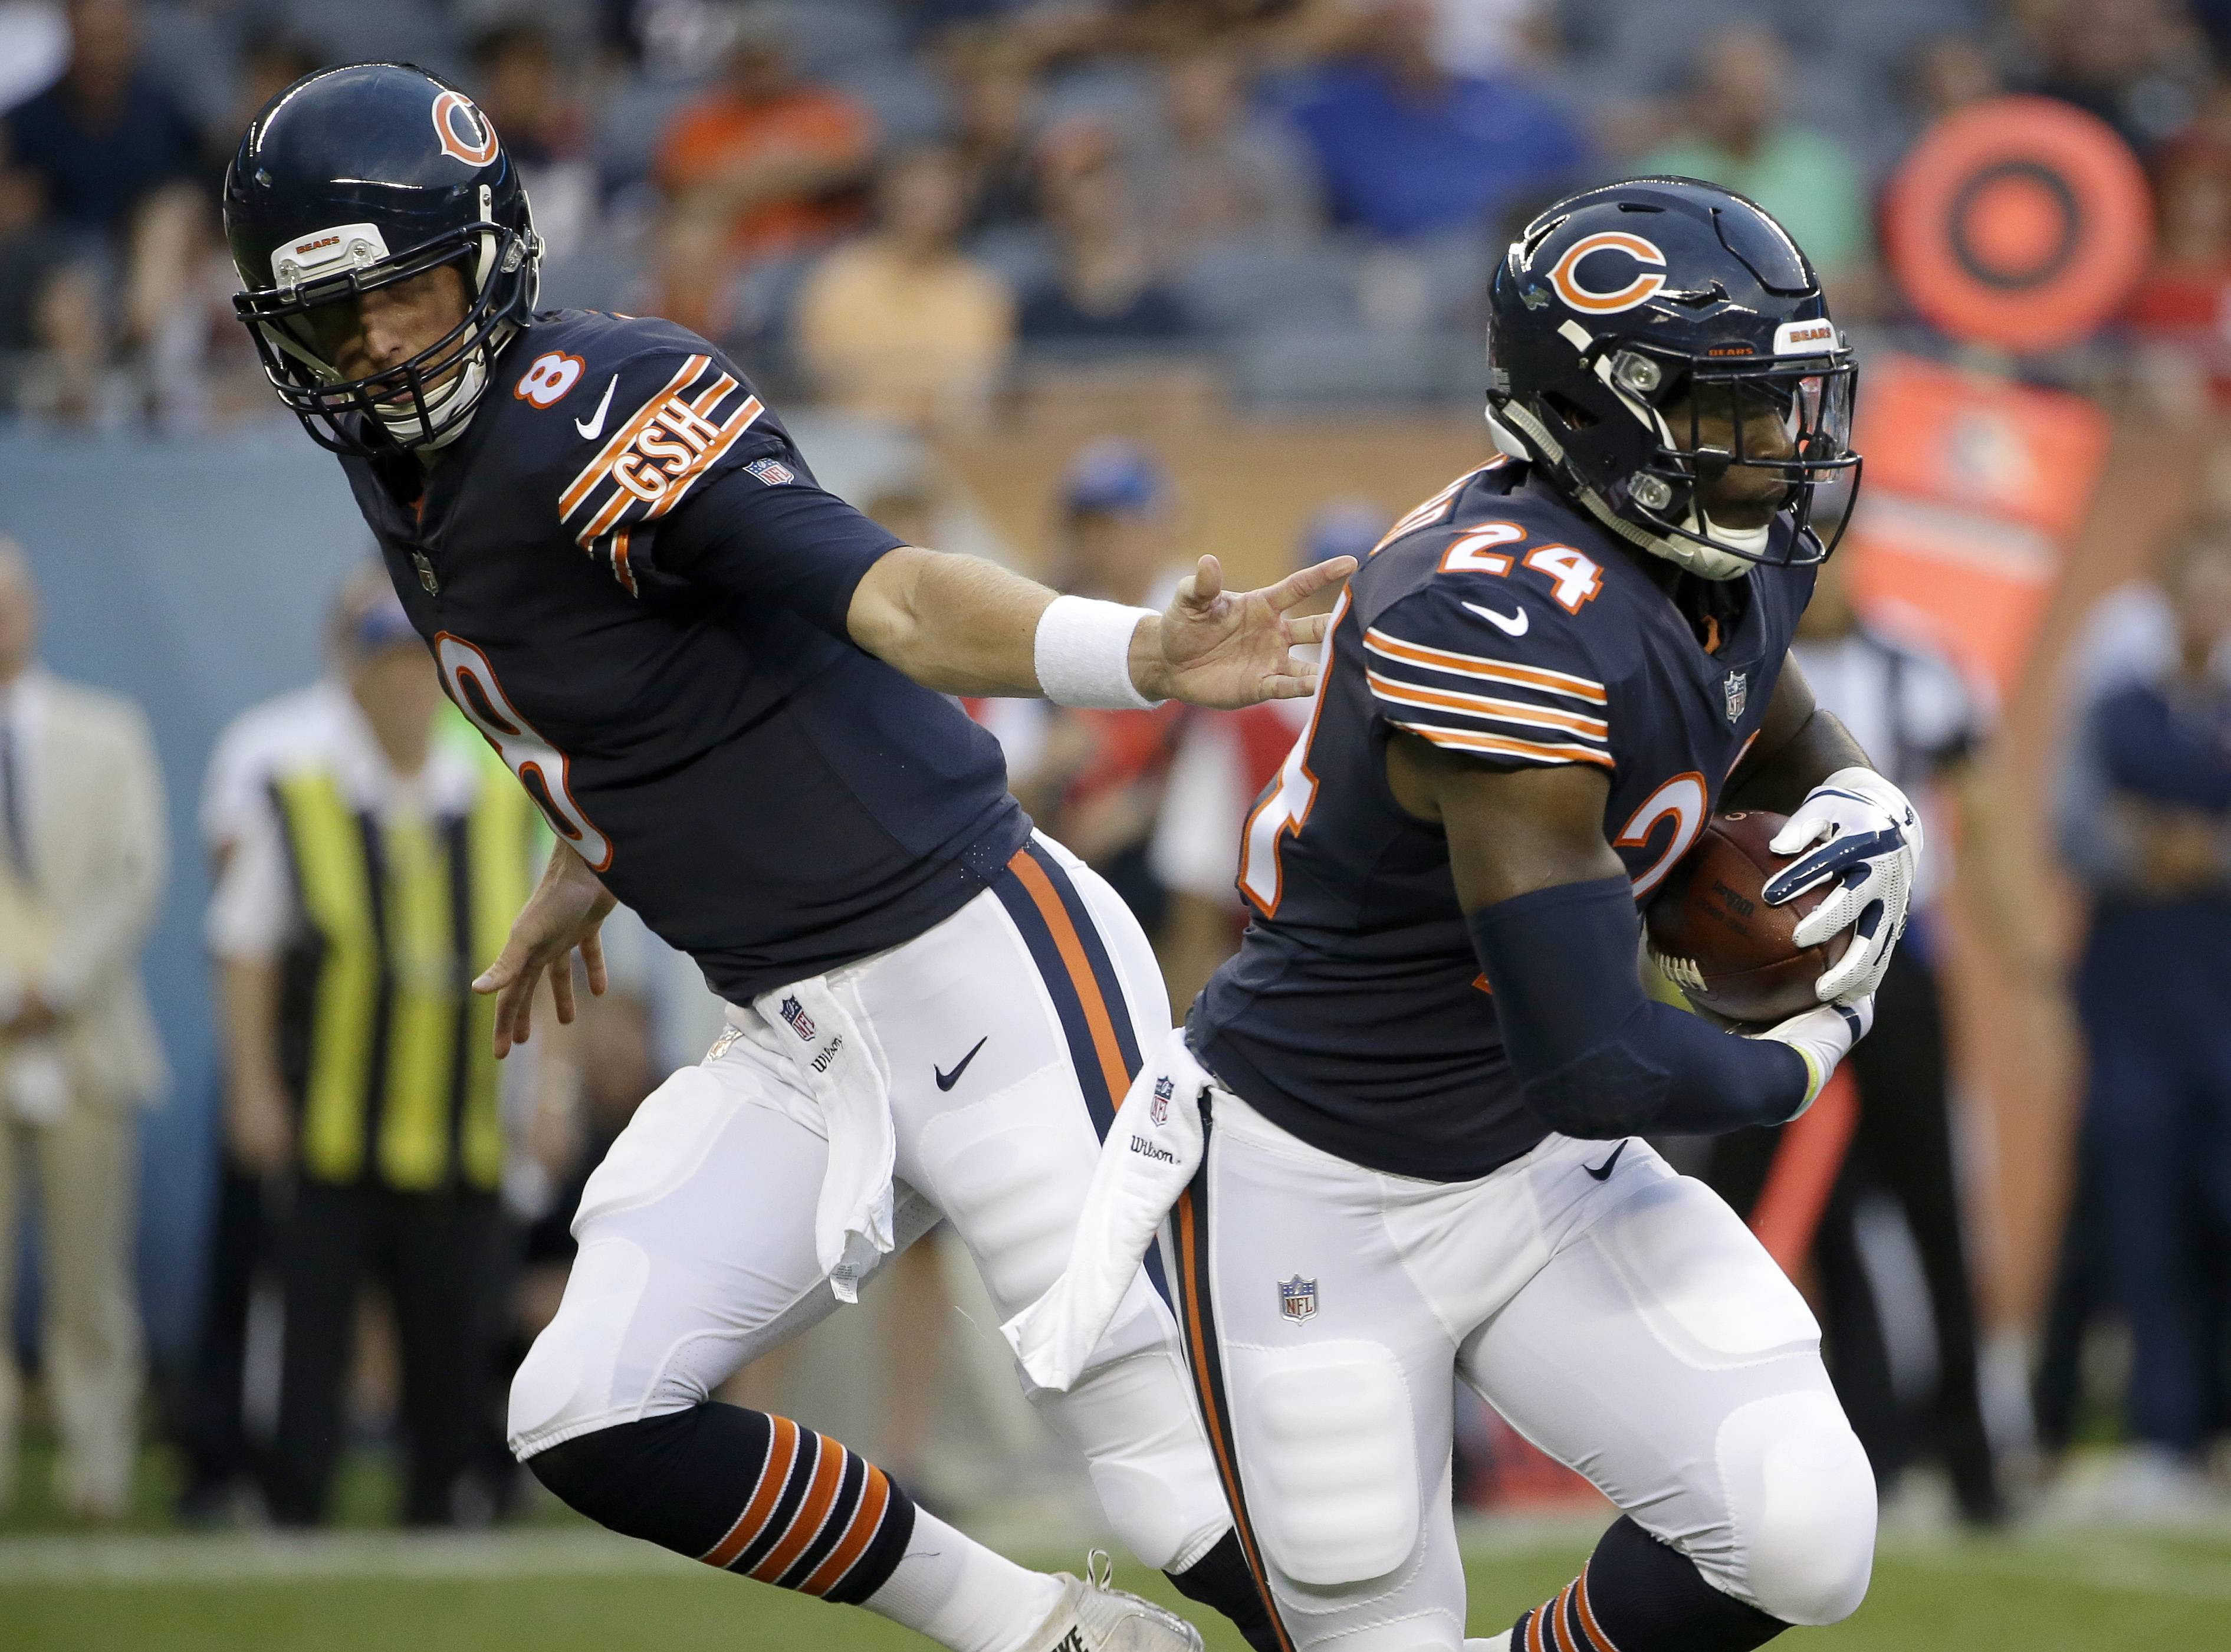 Chicago Bears running back Jordan Howard, right, might not have had many carries in the Bears' preseason opener, but he's still expected to carry the load this season.